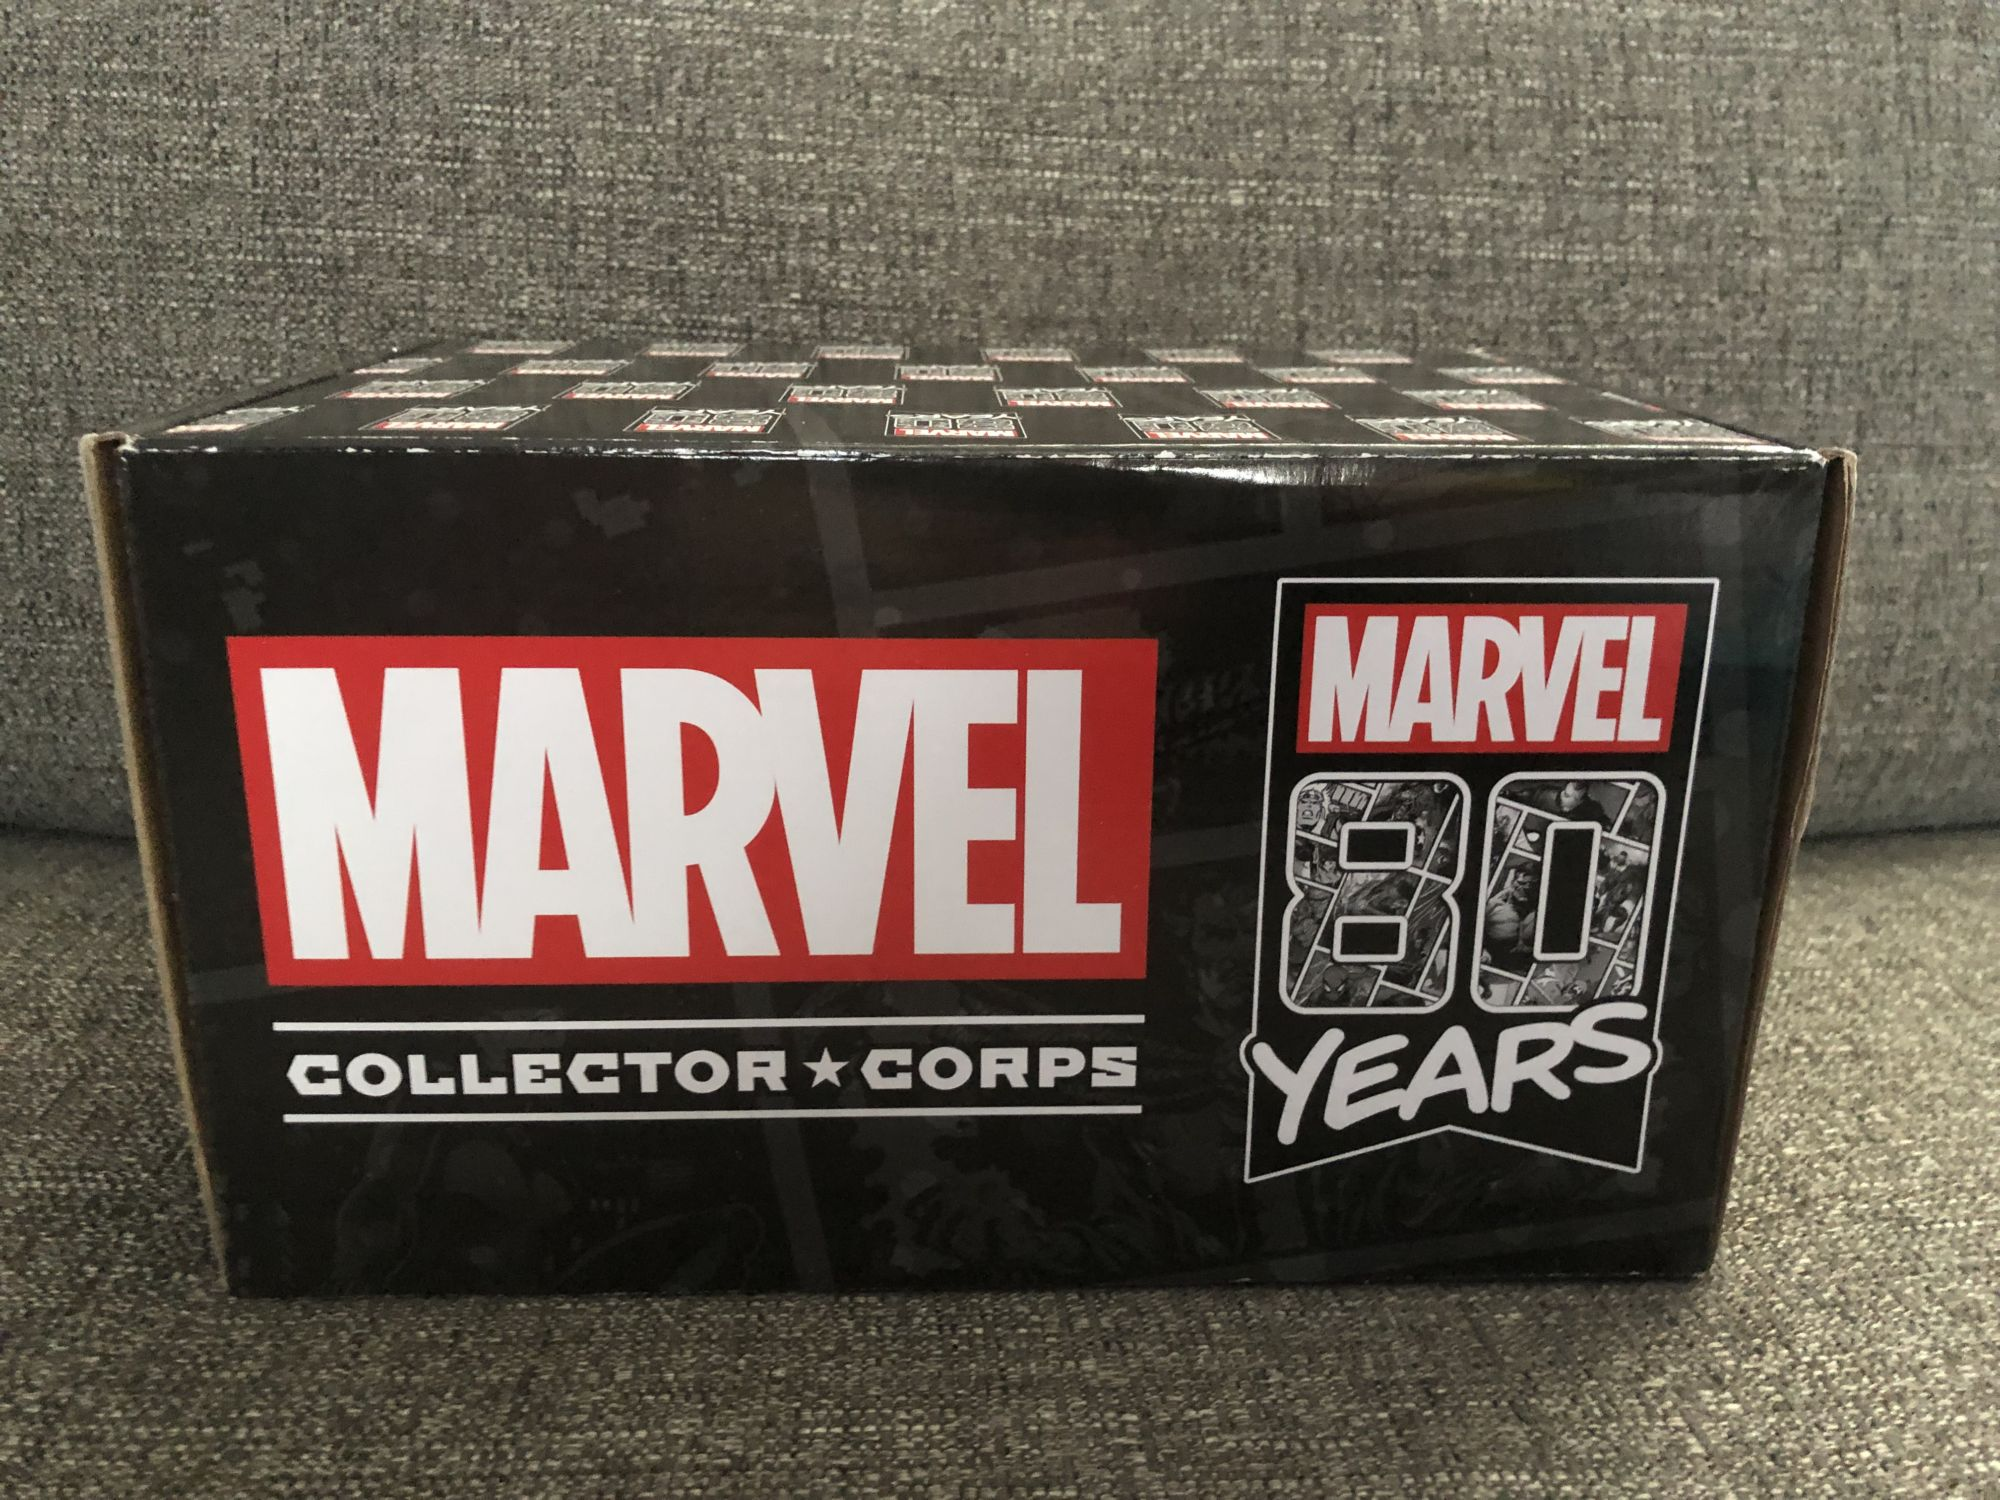 Let's Jump Into The Past With Marvel Collector Corps 1939 Box [Unboxing]